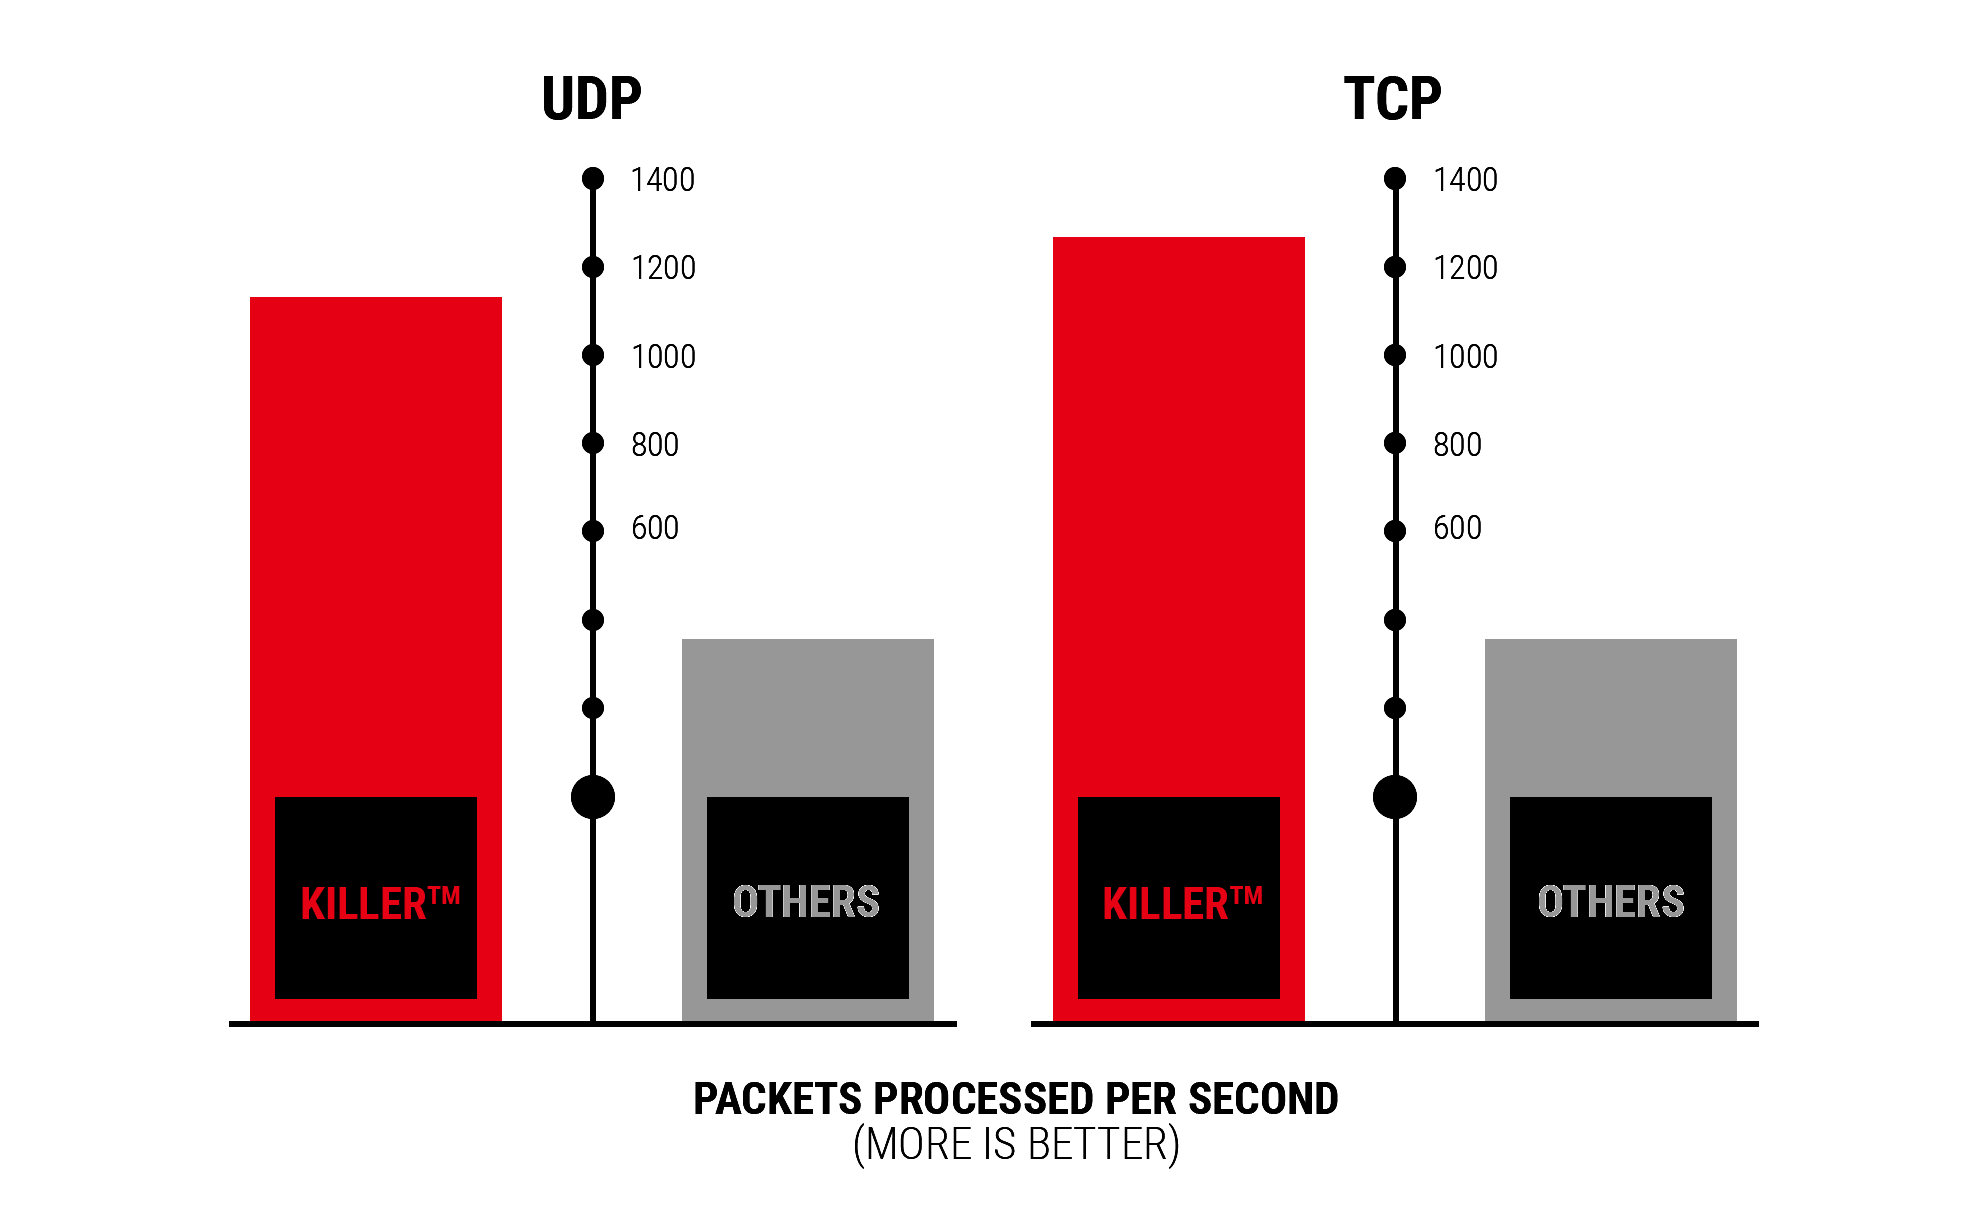 Killer RightChart